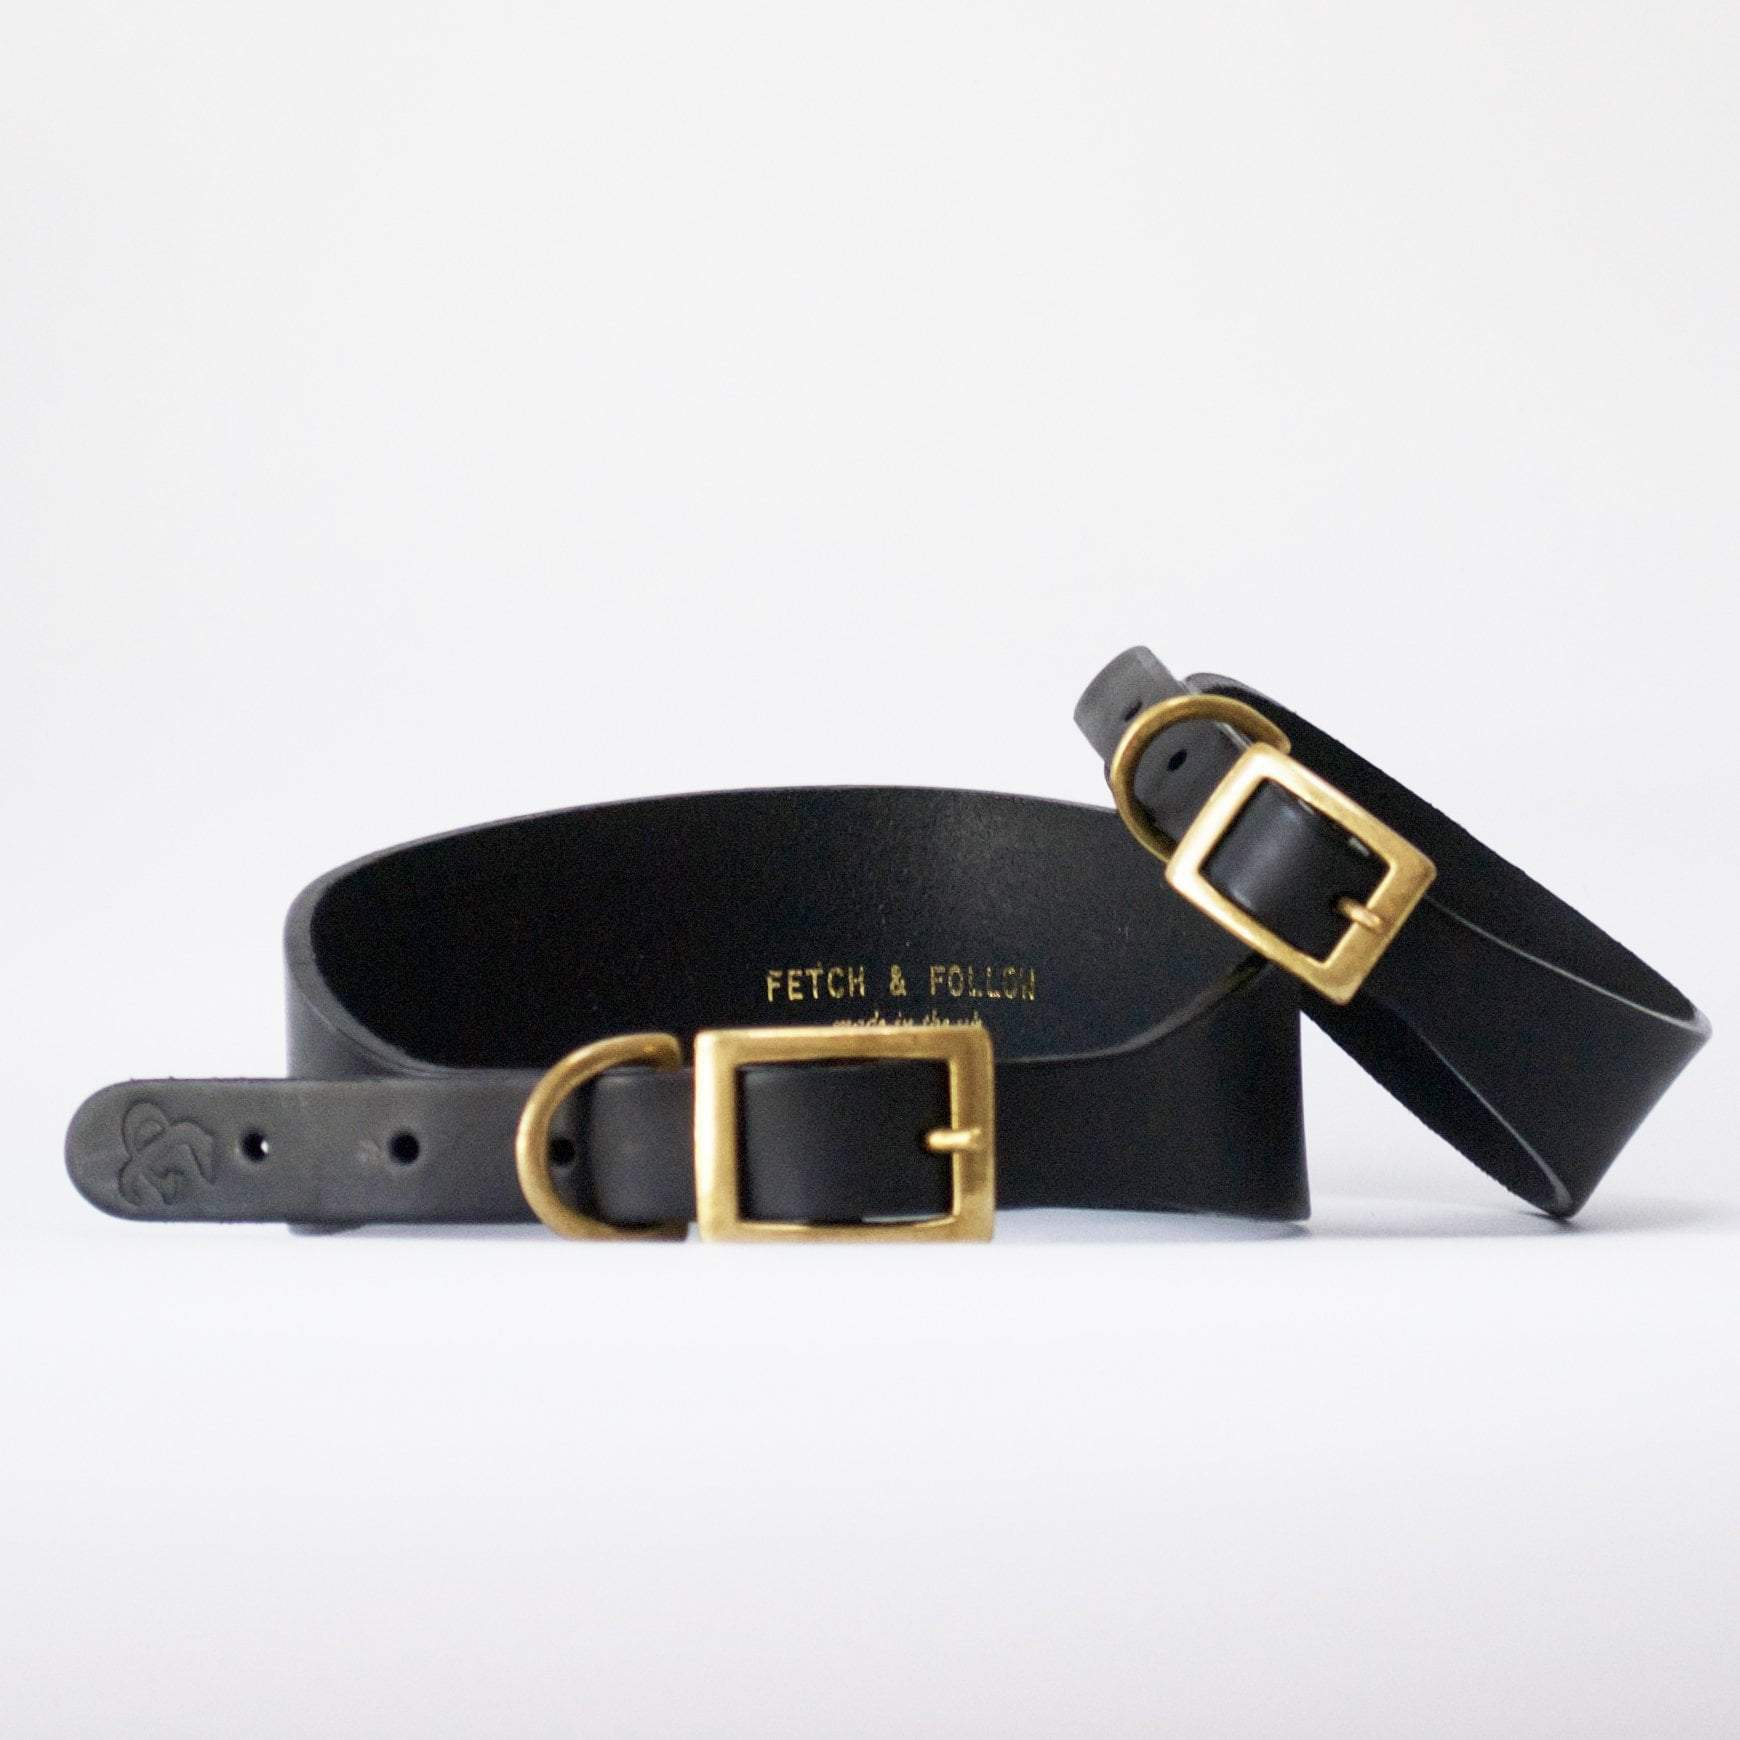 Fetch and Follow Hound Leather Collar - Black